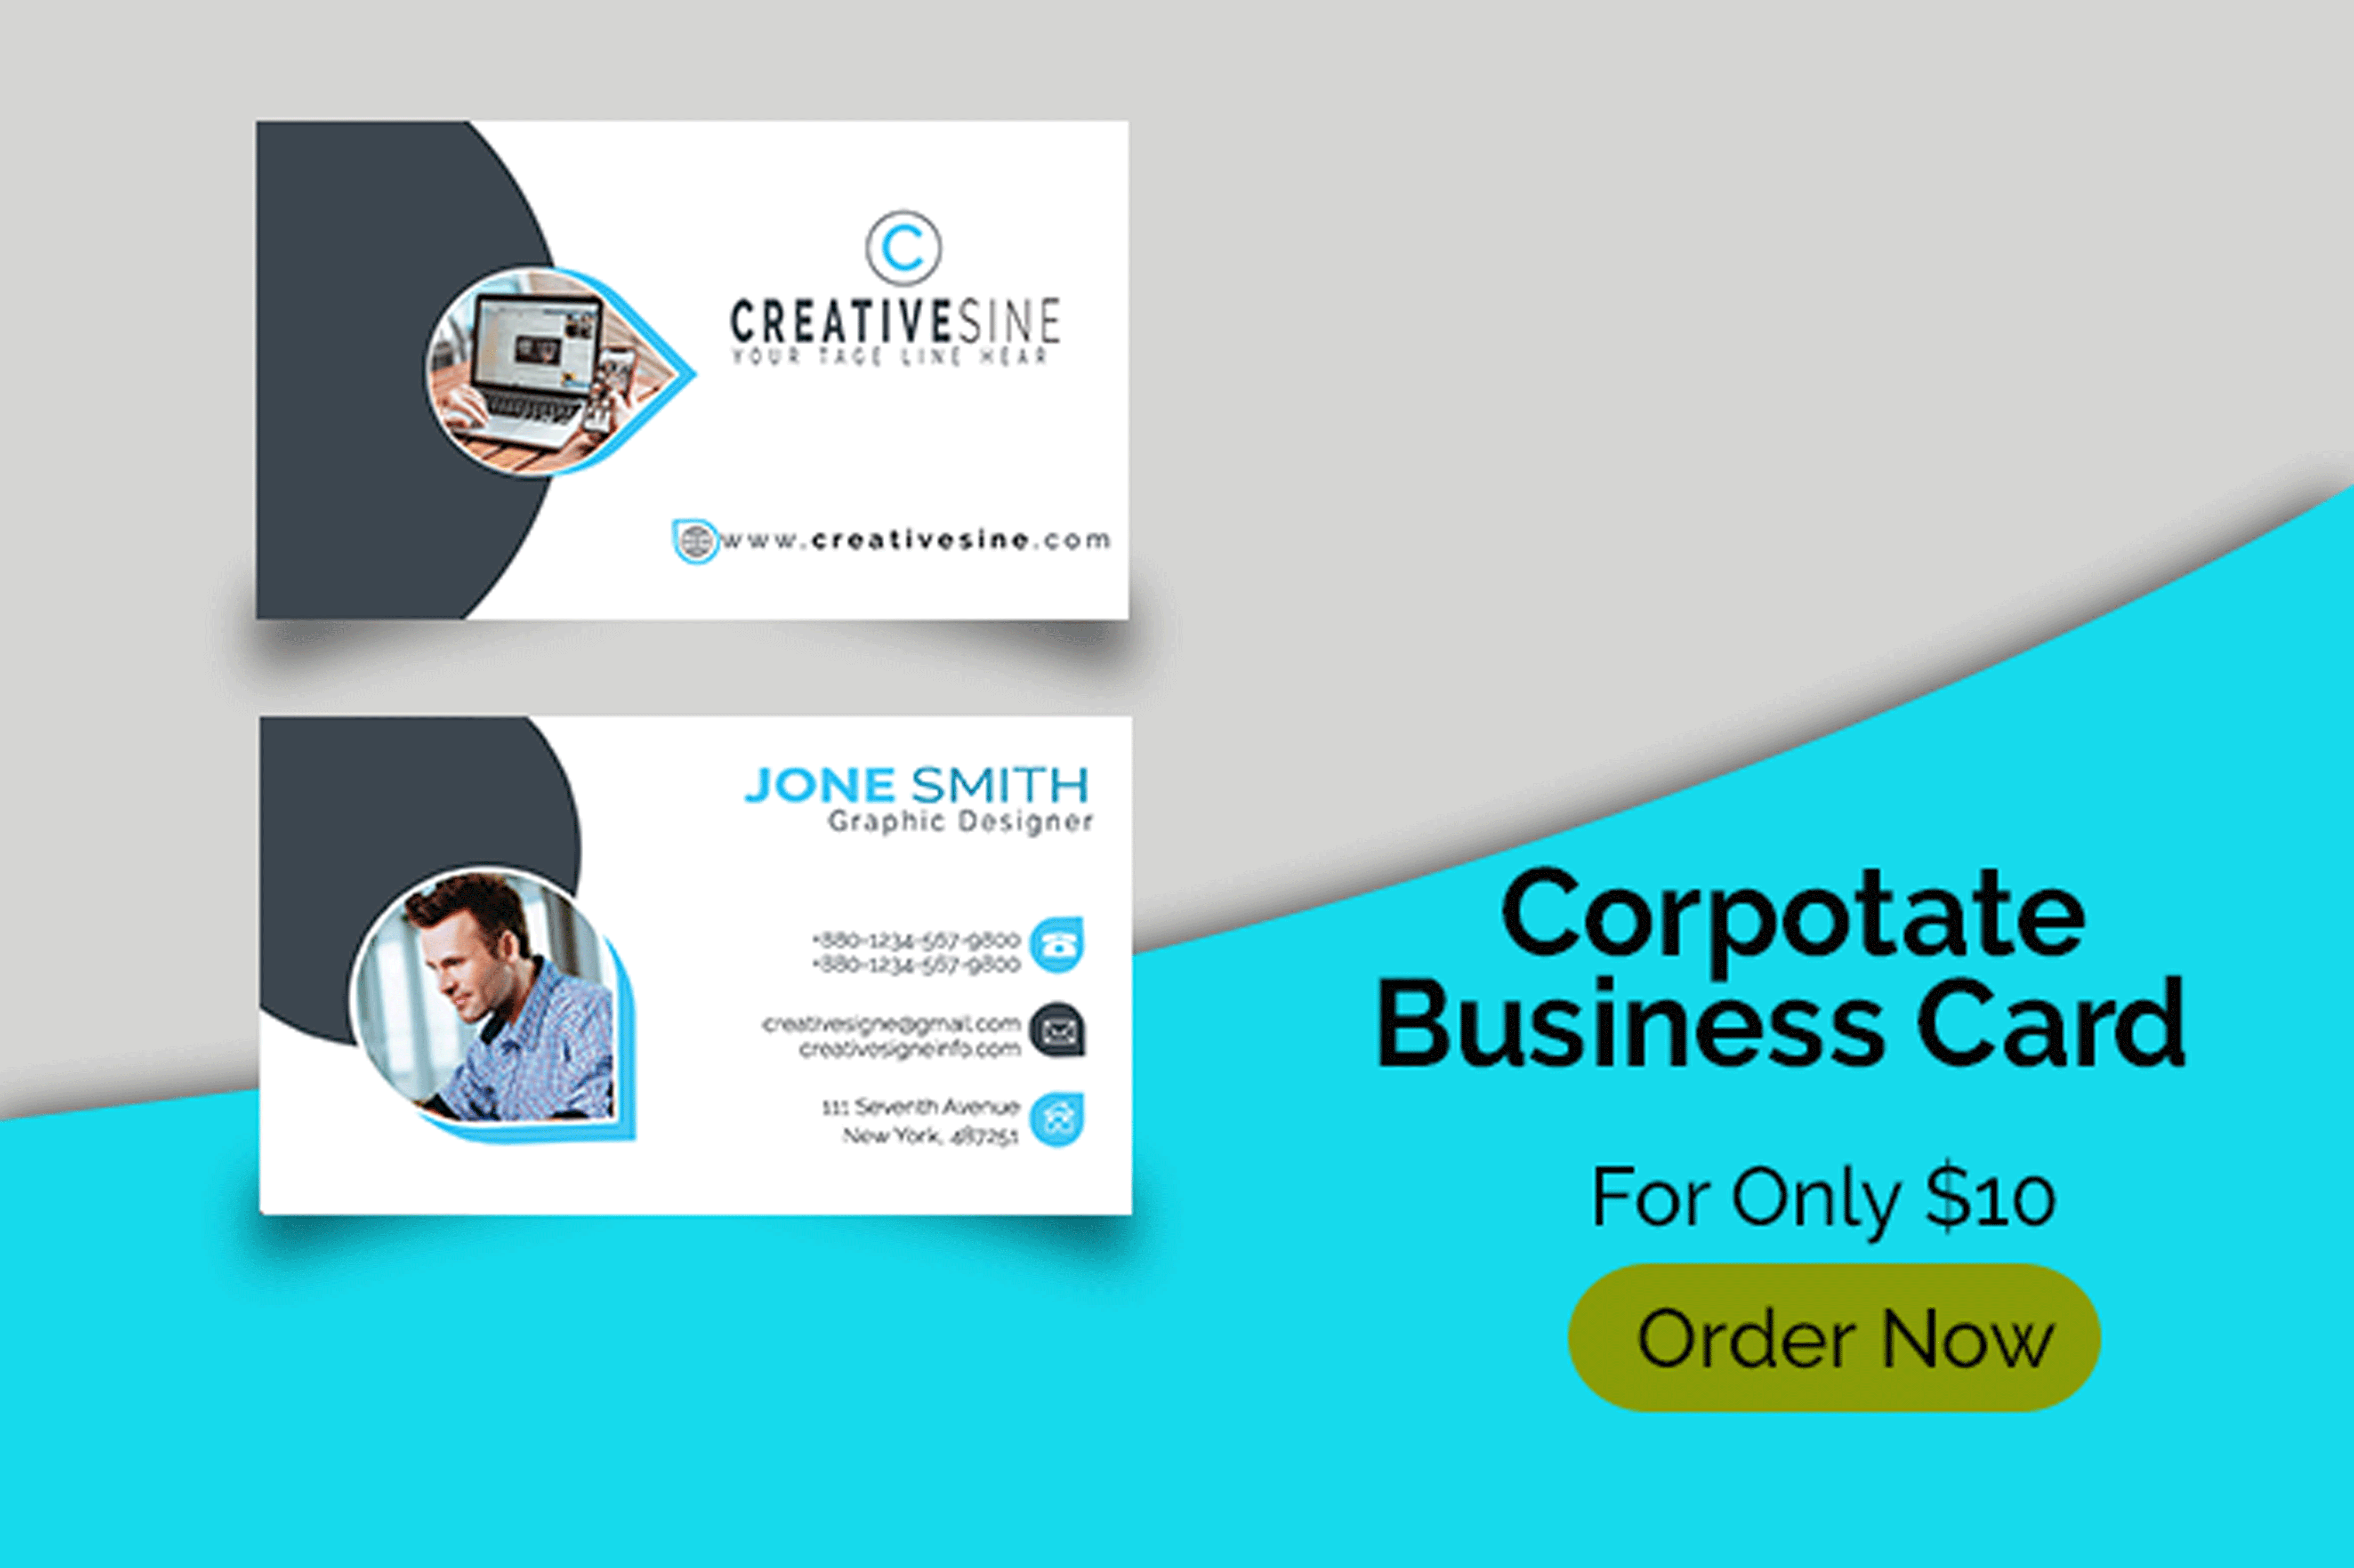 I will design professional business card, id card and stationery